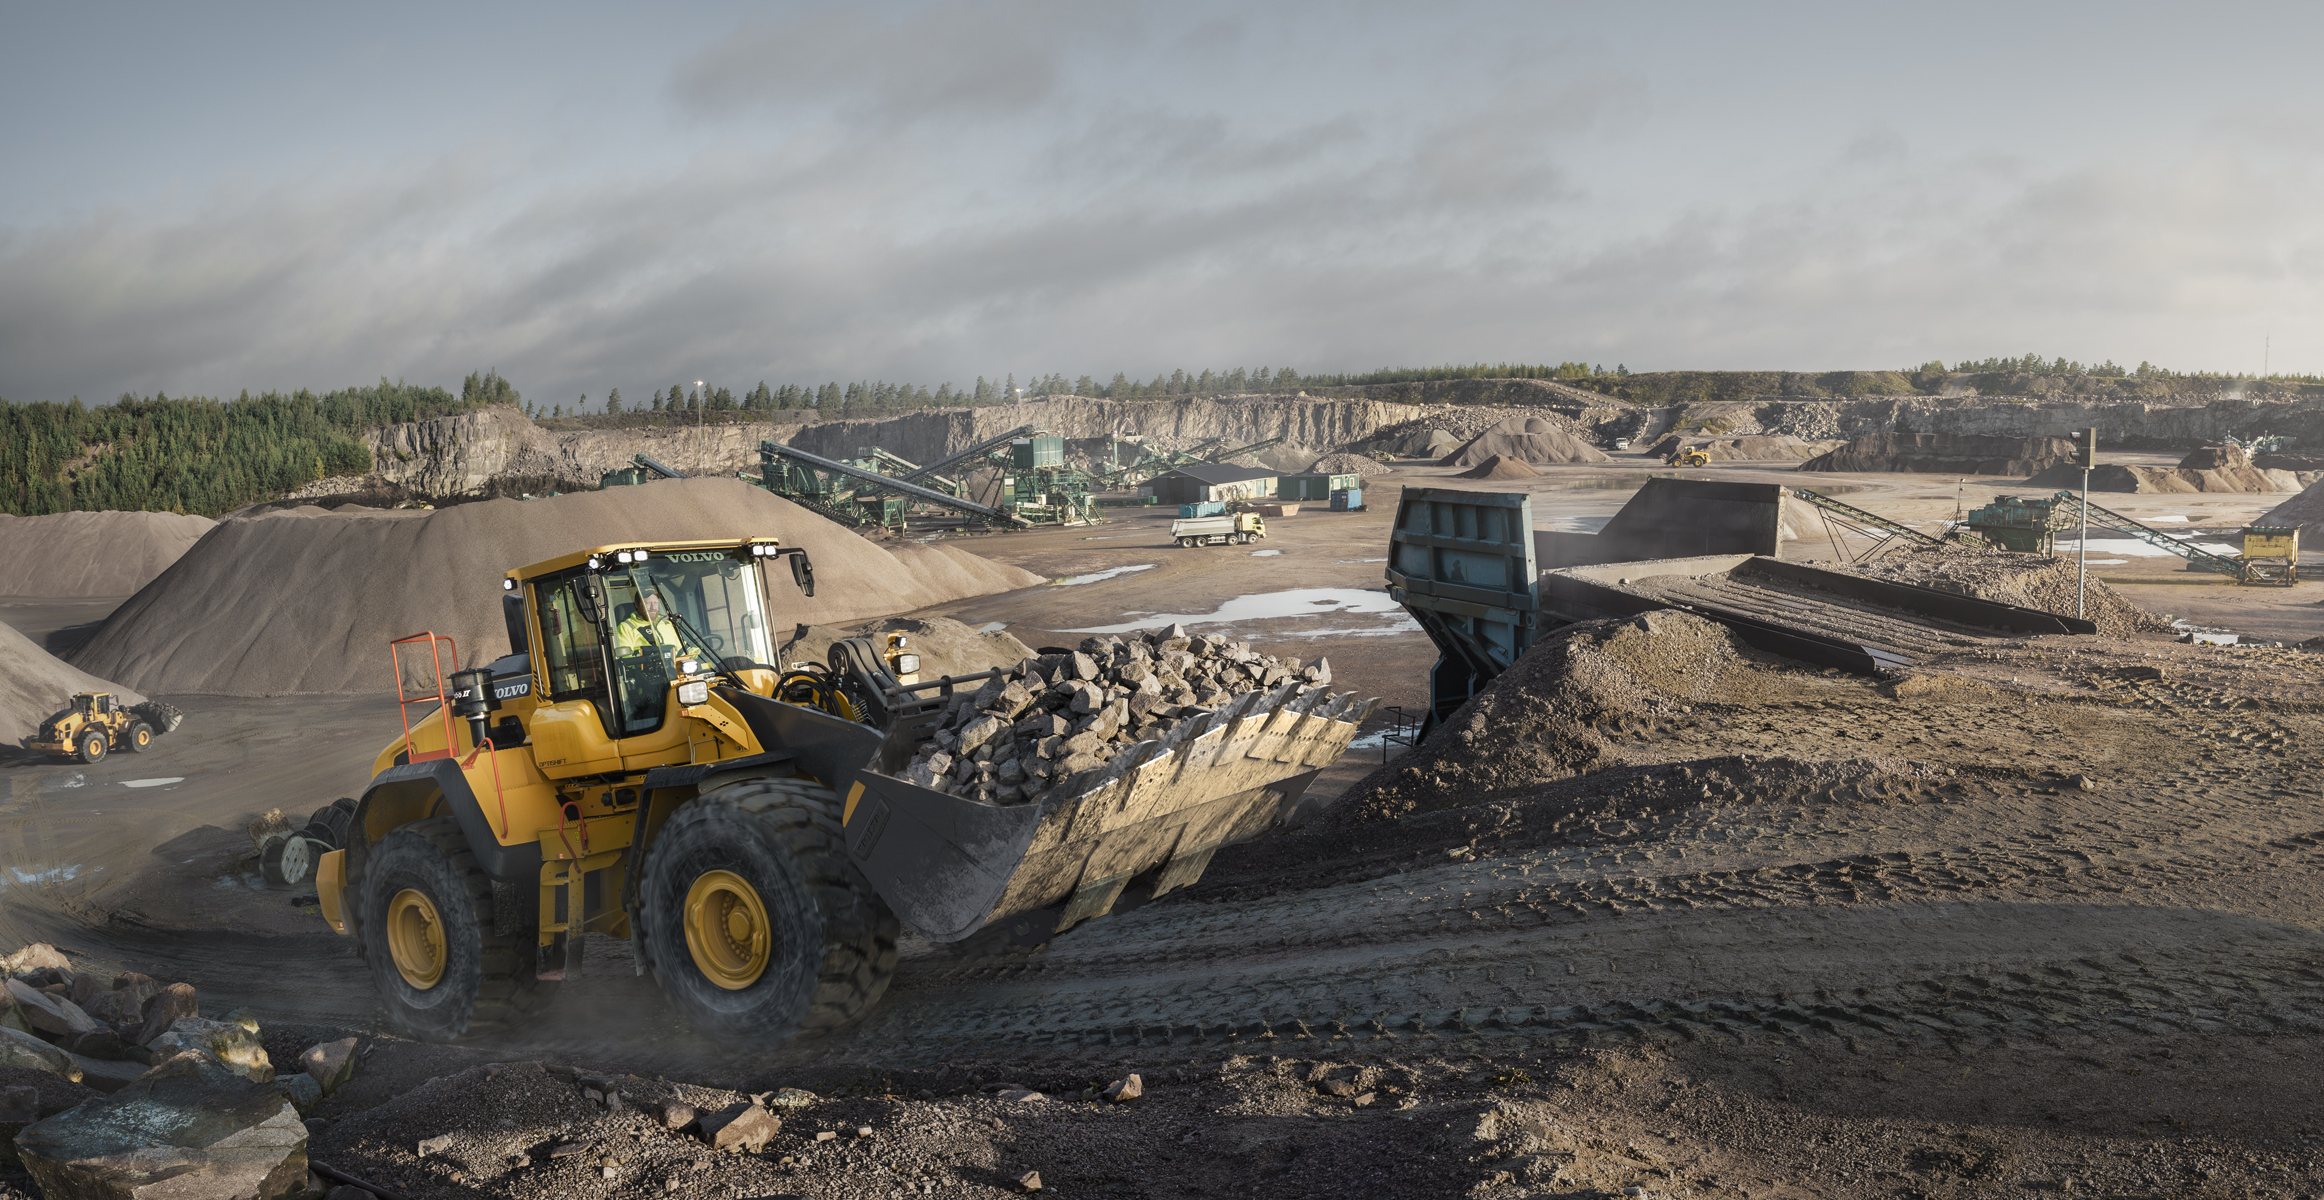 en wheel volvo recycling news loader product